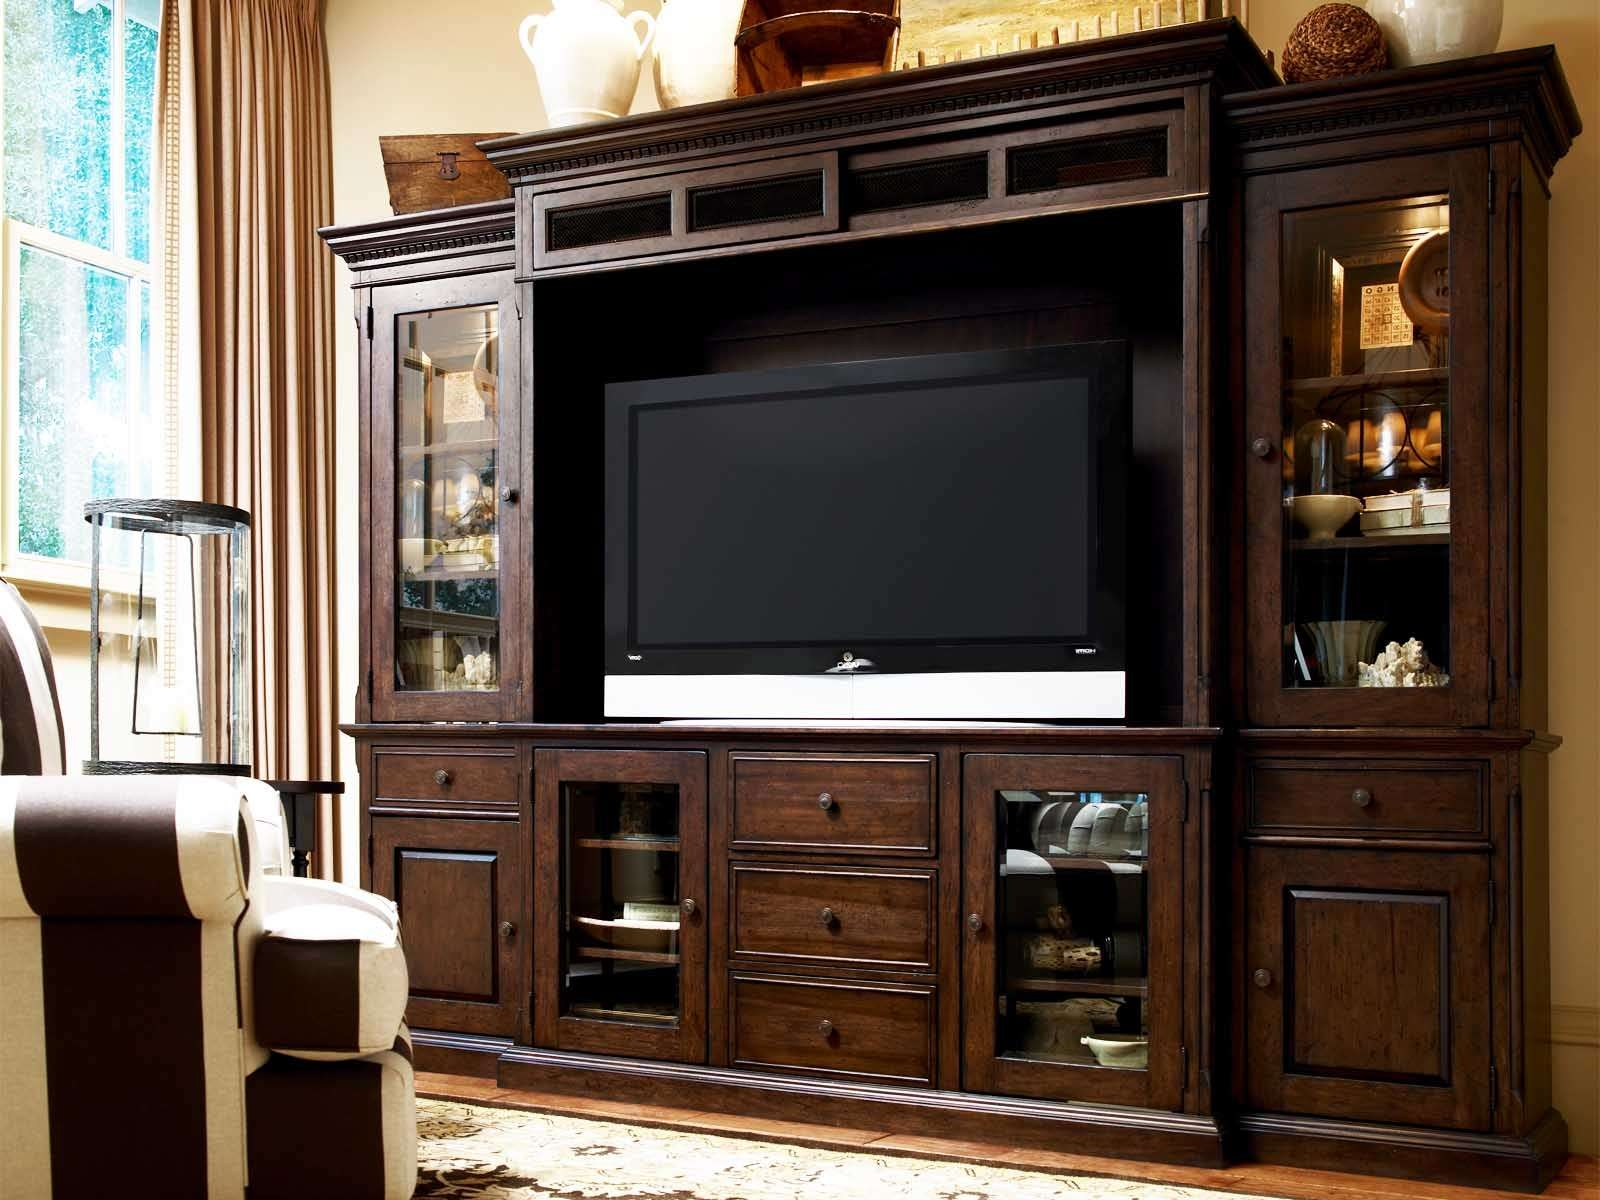 Tv Stand With Hutch Be Equipped Cabinet Drawer Made Of Wood For Throughout Tv Cabinets With Drawers (View 18 of 20)